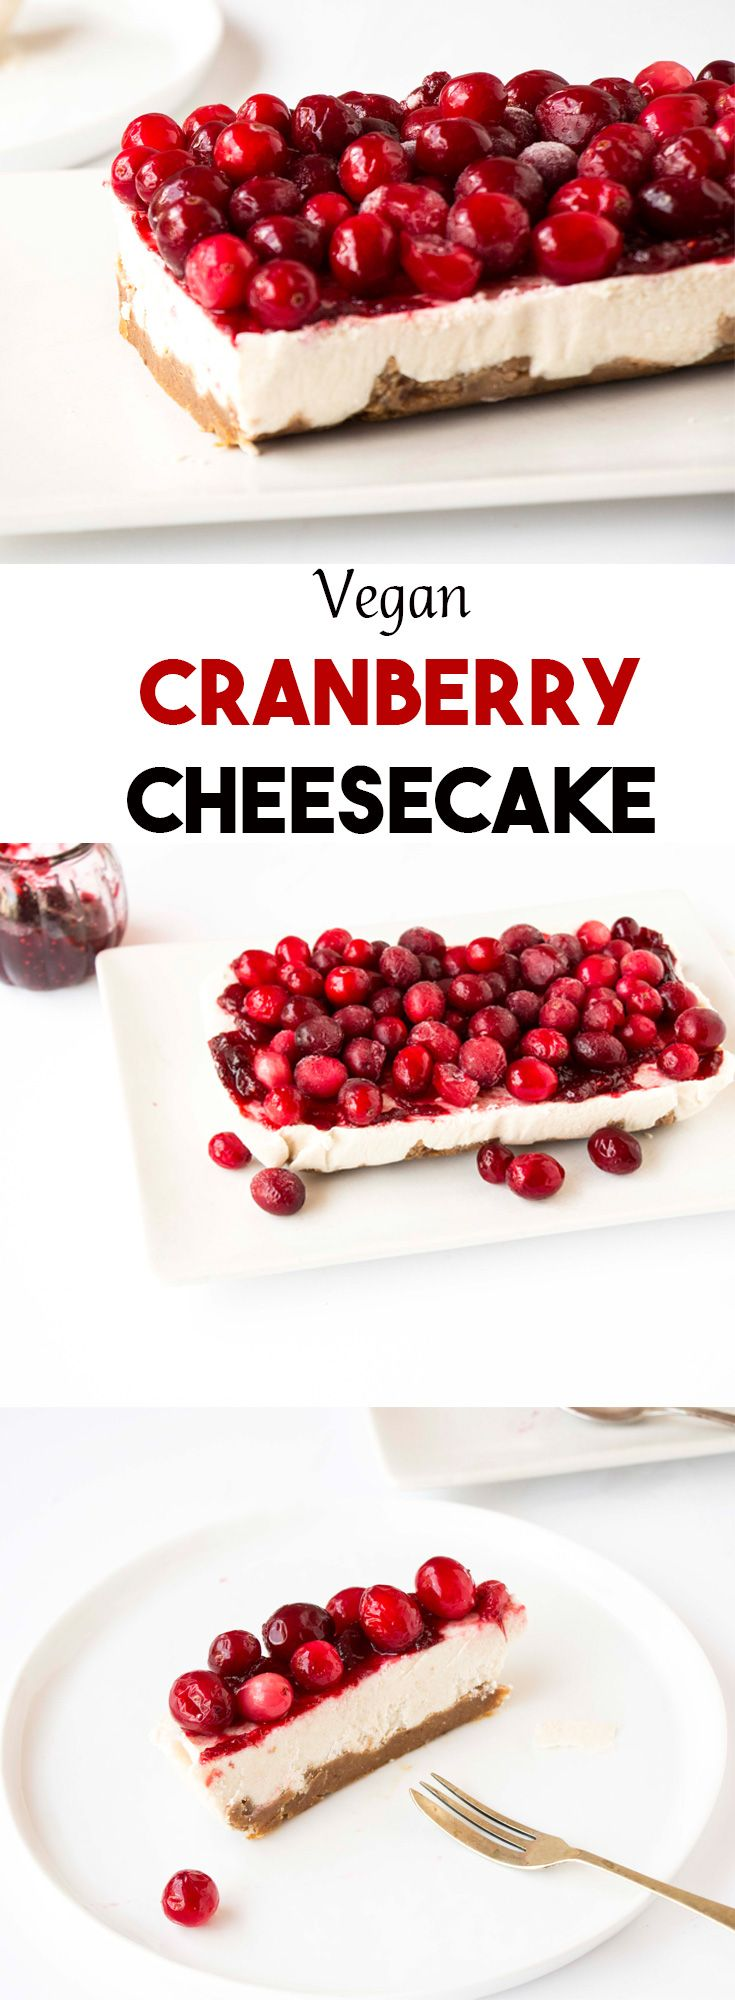 This Vegan Cranberry Cheesecake recipe is one of the most delicious and beautiful cakes I have ever made. It pretty much only requires a blender and a freezer and everyone will love this cake (vegan or not). The perfect addition to your Christmas table.